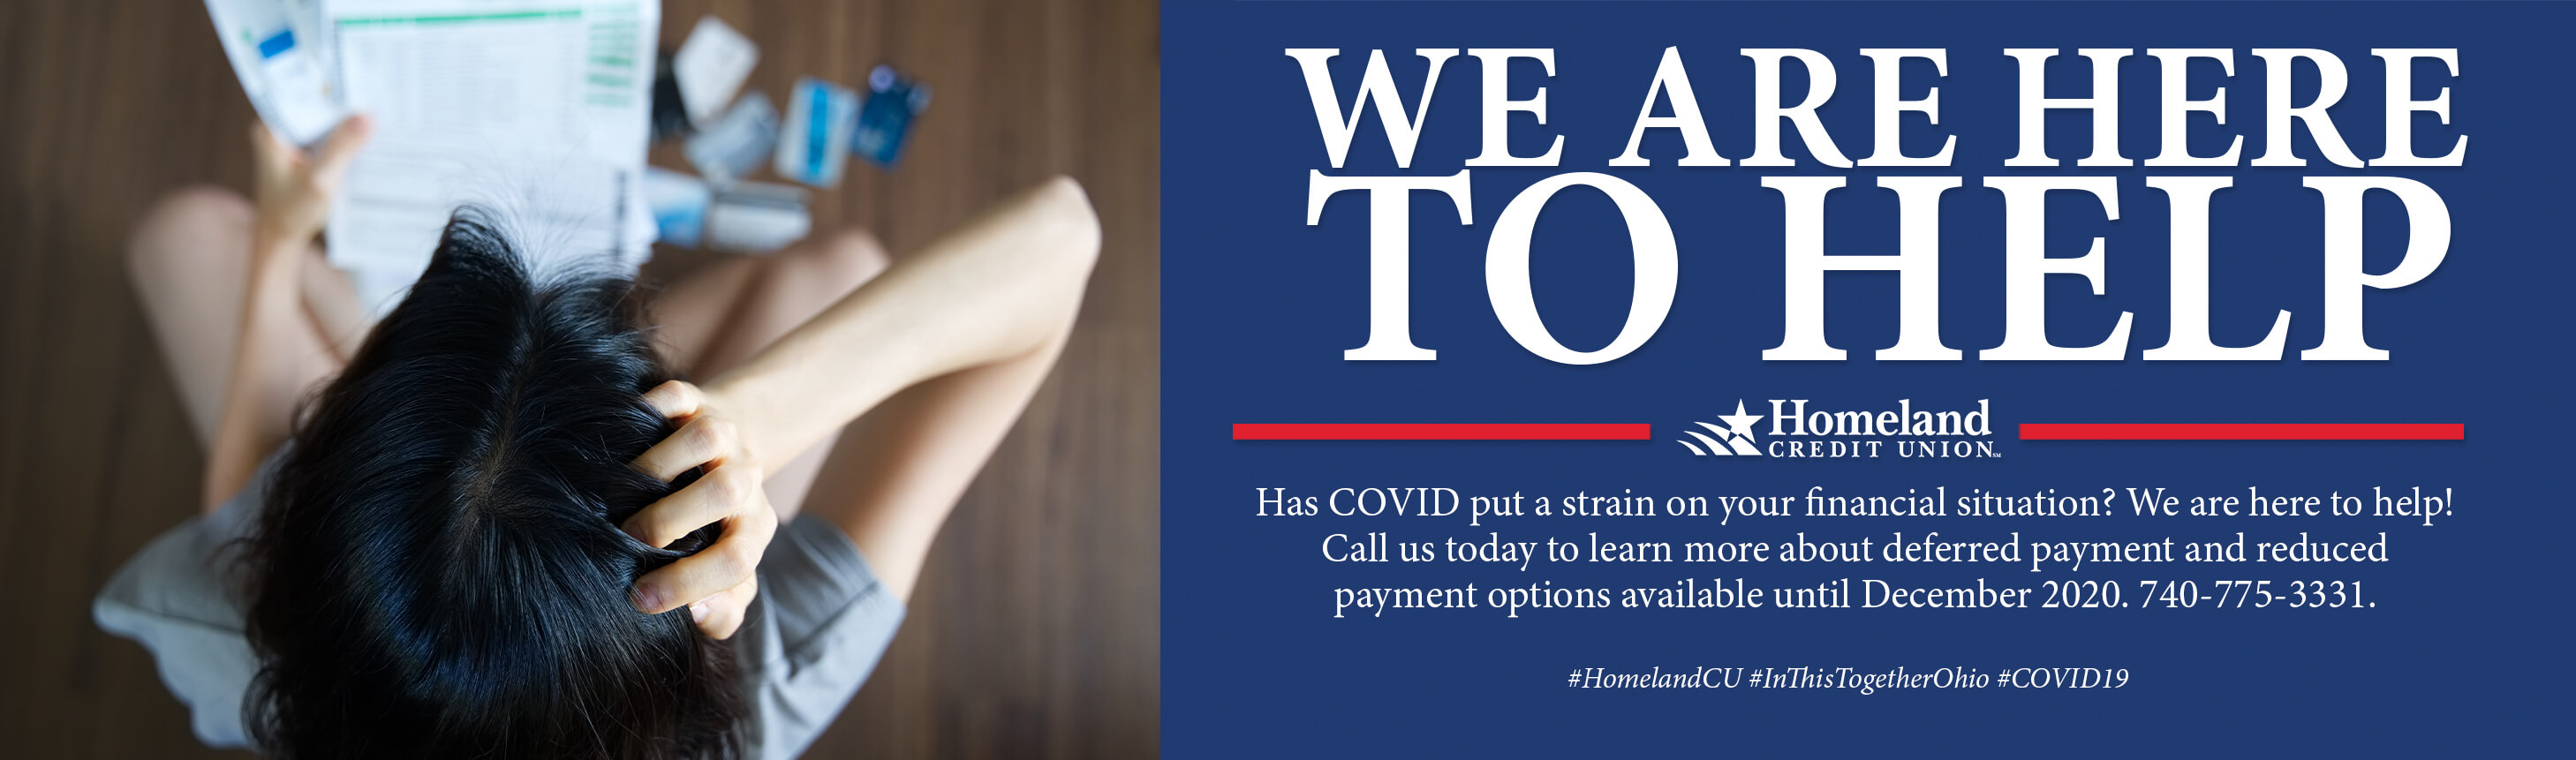 We are here to help. Homeland Credit Union. Has COVID put a strain on your financial situation? We are here to help! Call us today to learn more about deferred payment and reduced payment options available until December 2020. 740-775-3331.